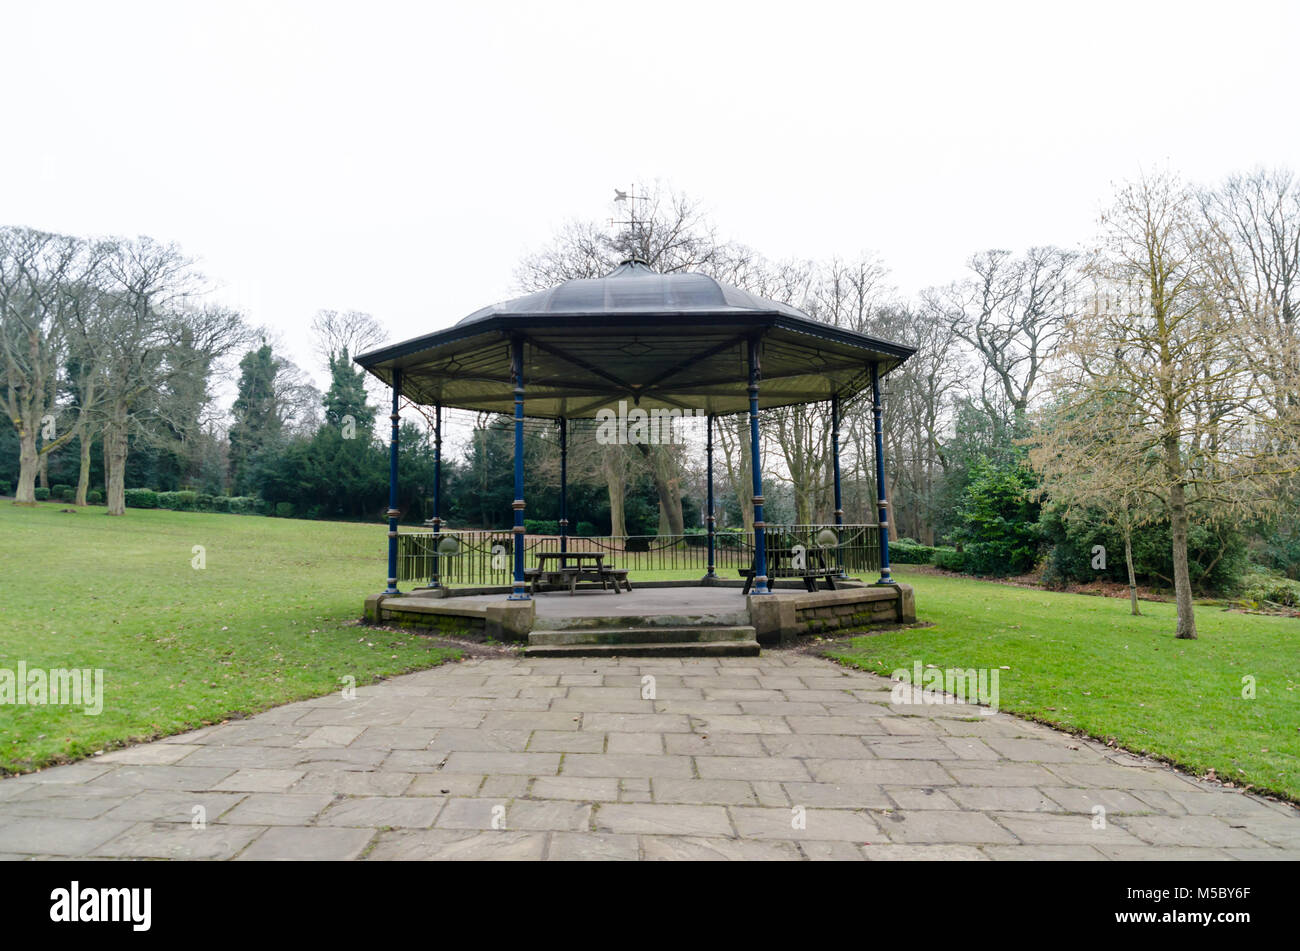 A Bandstand in Saltwell Park, Gateshead, in Winter - Stock Image